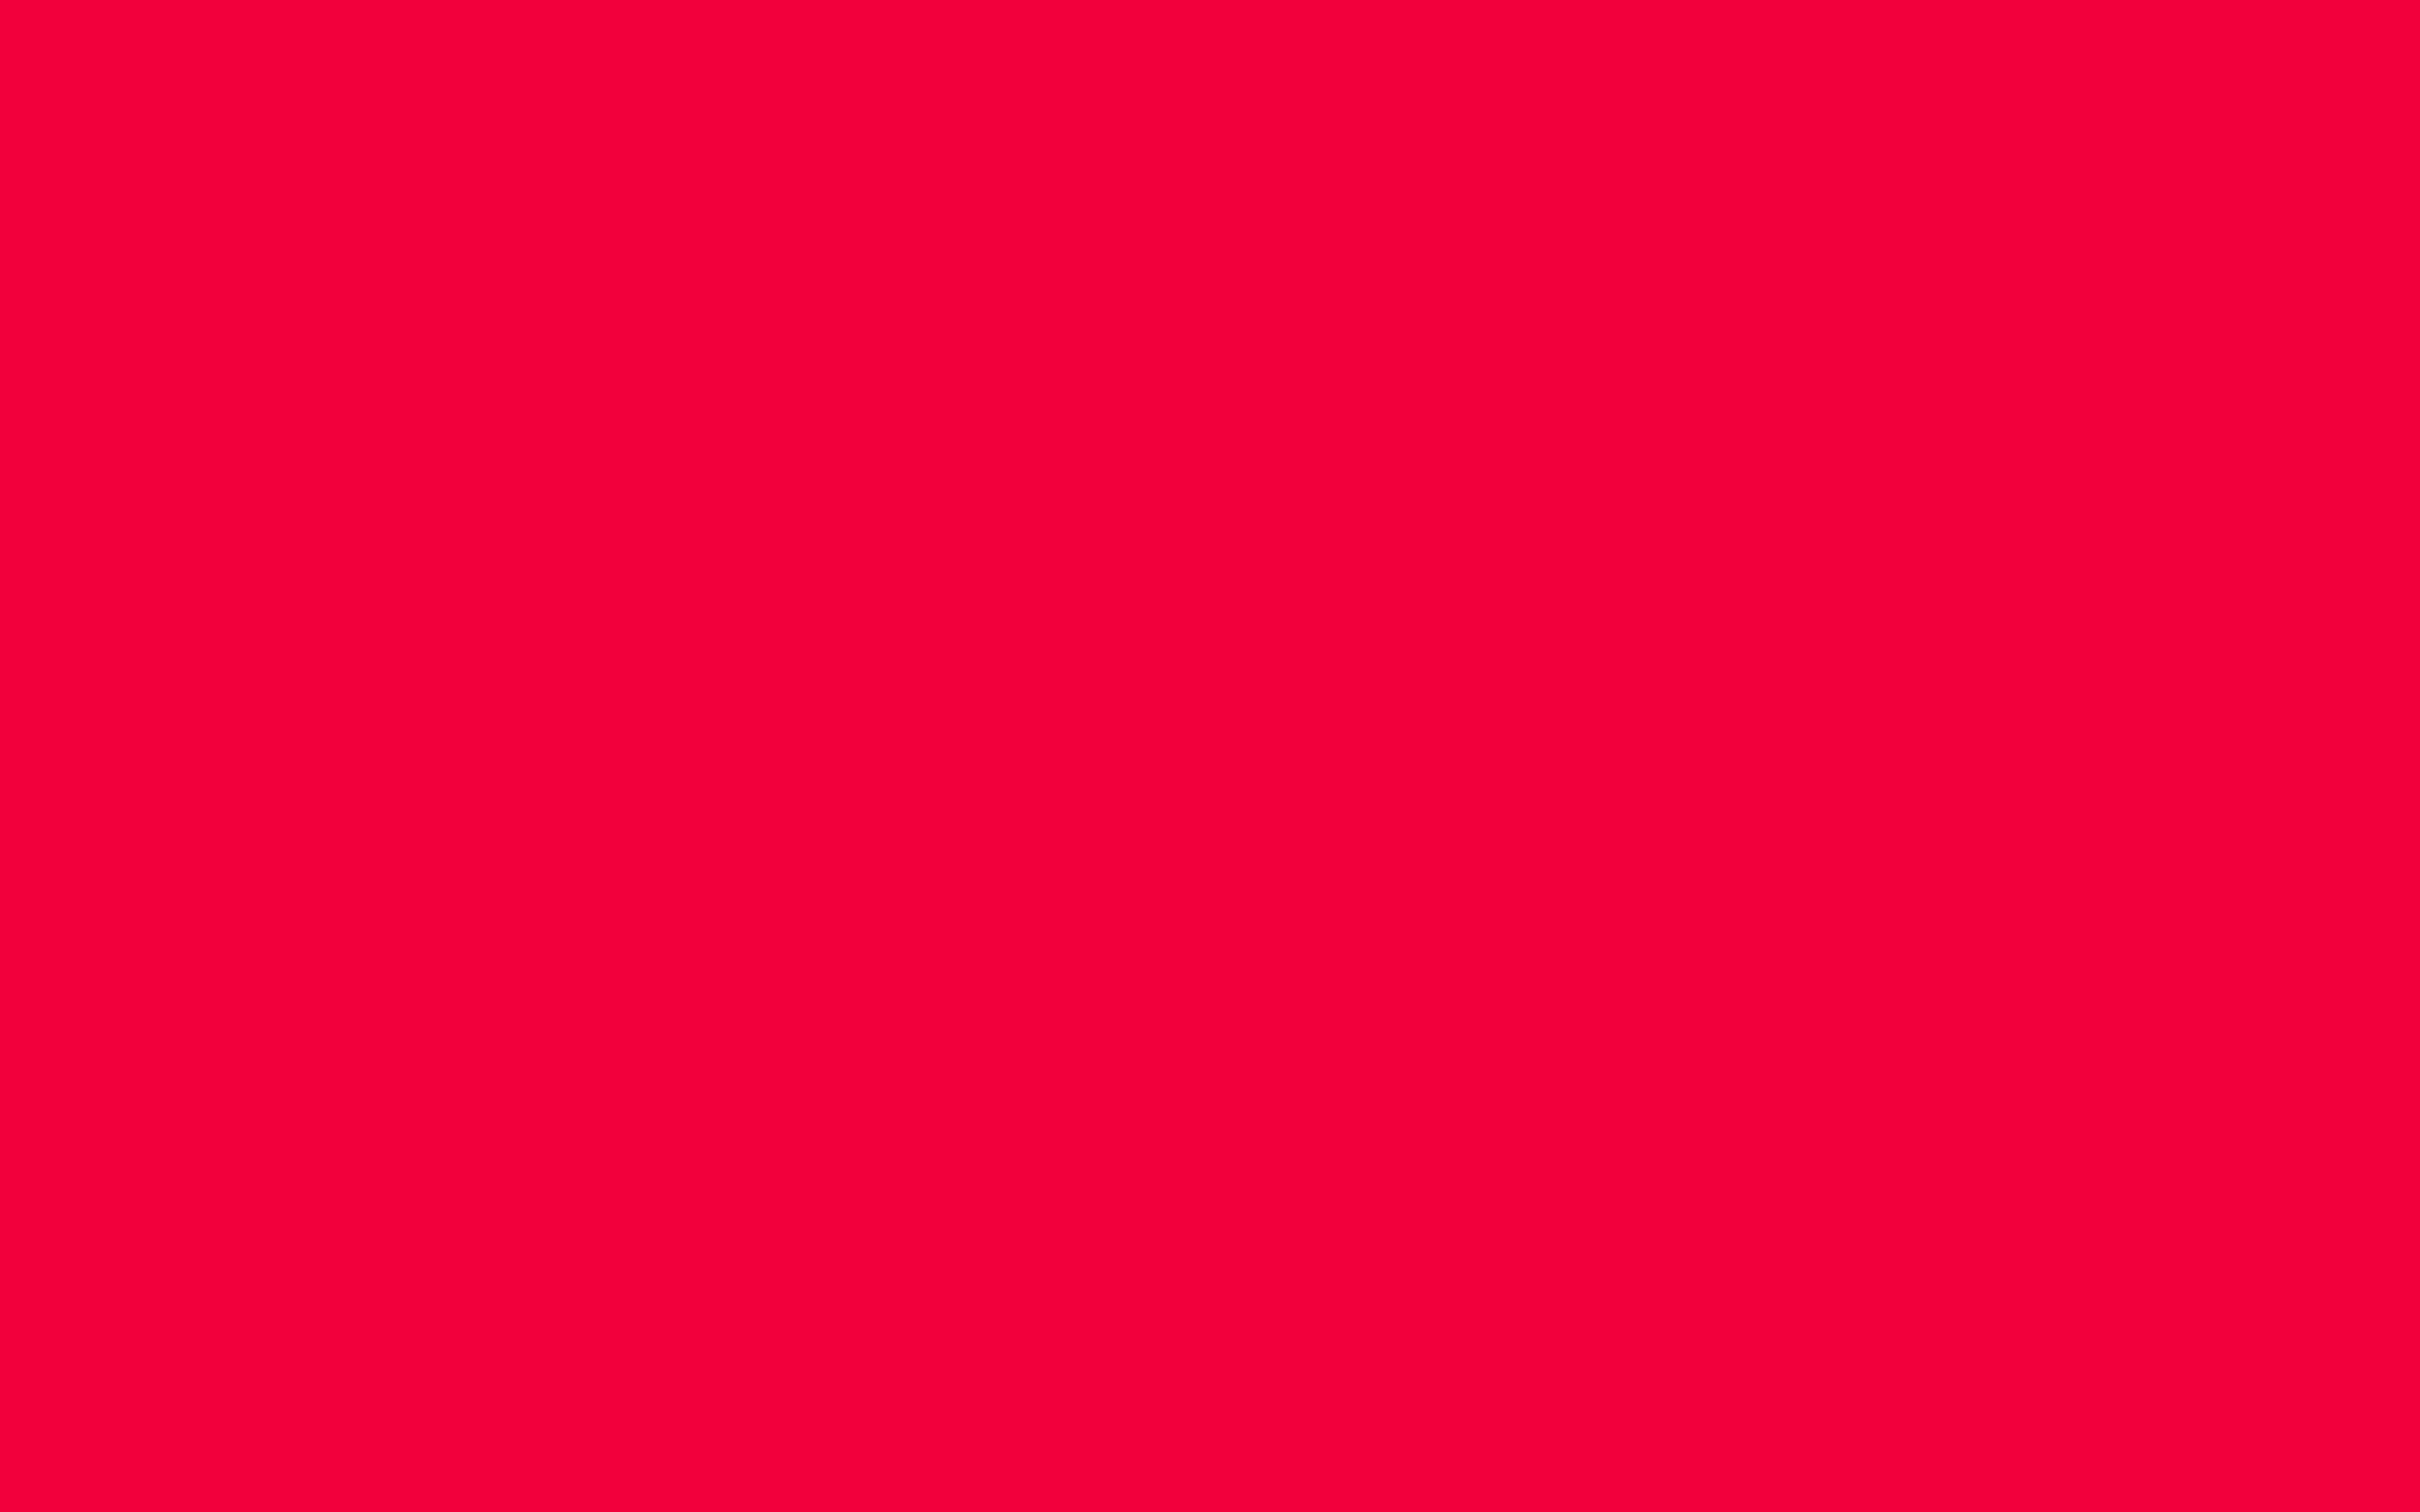 2560x1600 Red Munsell Solid Color Background